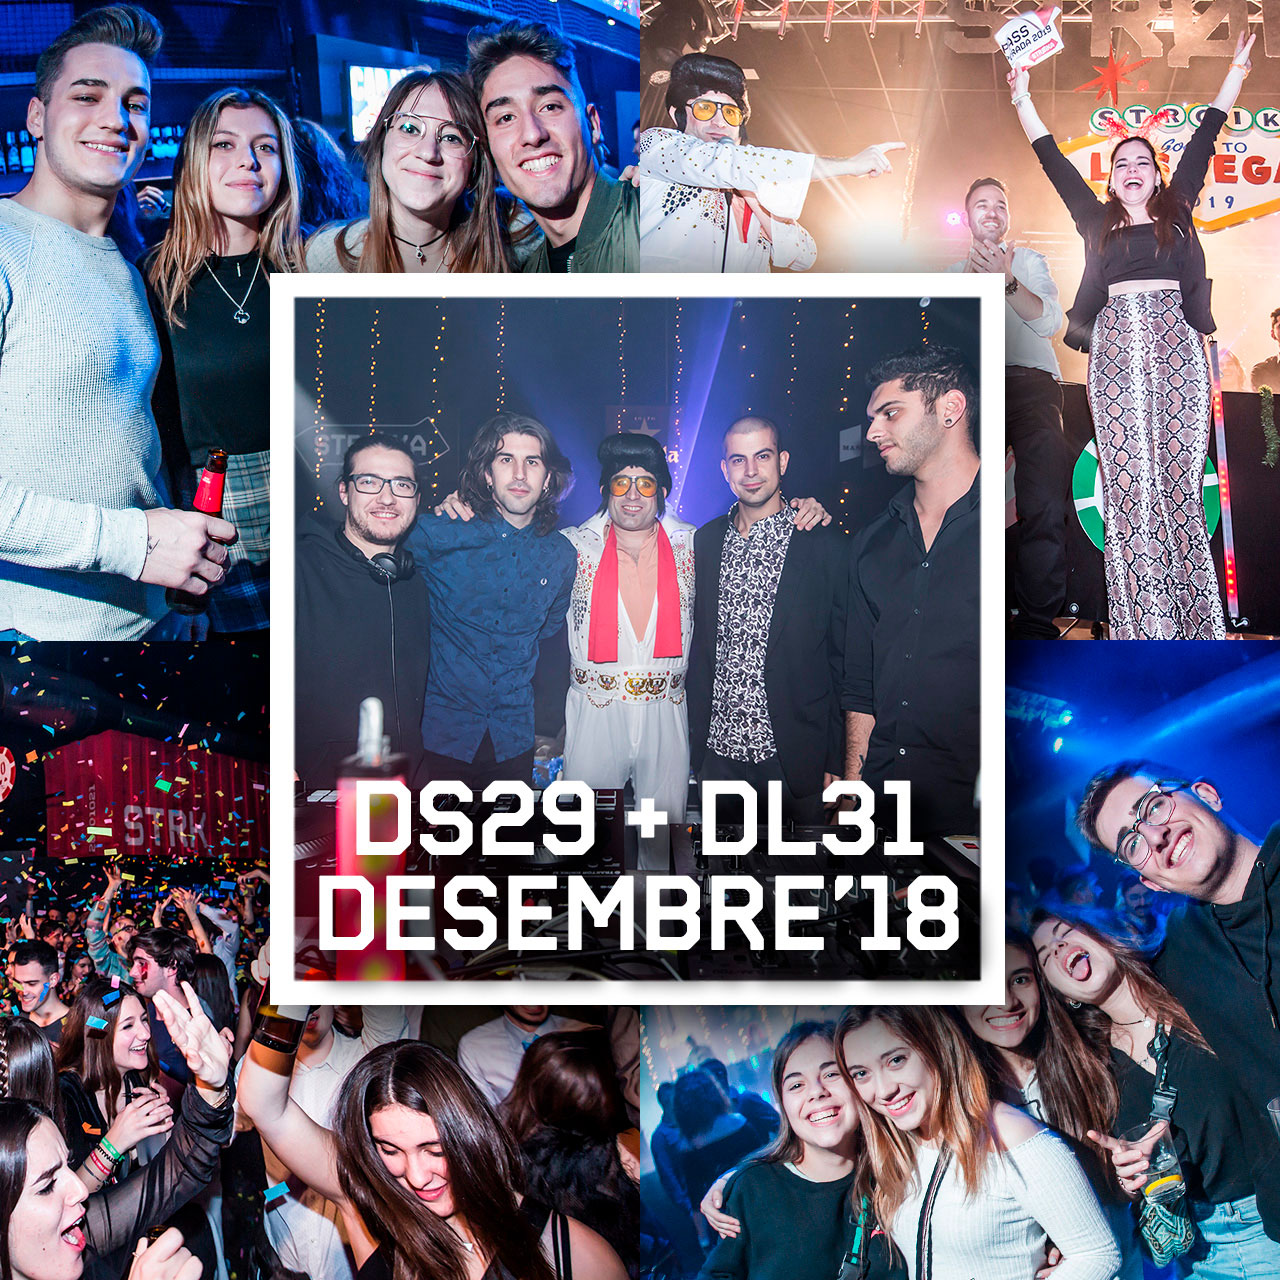 DS29 +DL31 DES'18 // SESSIONS + CAP D'ANY